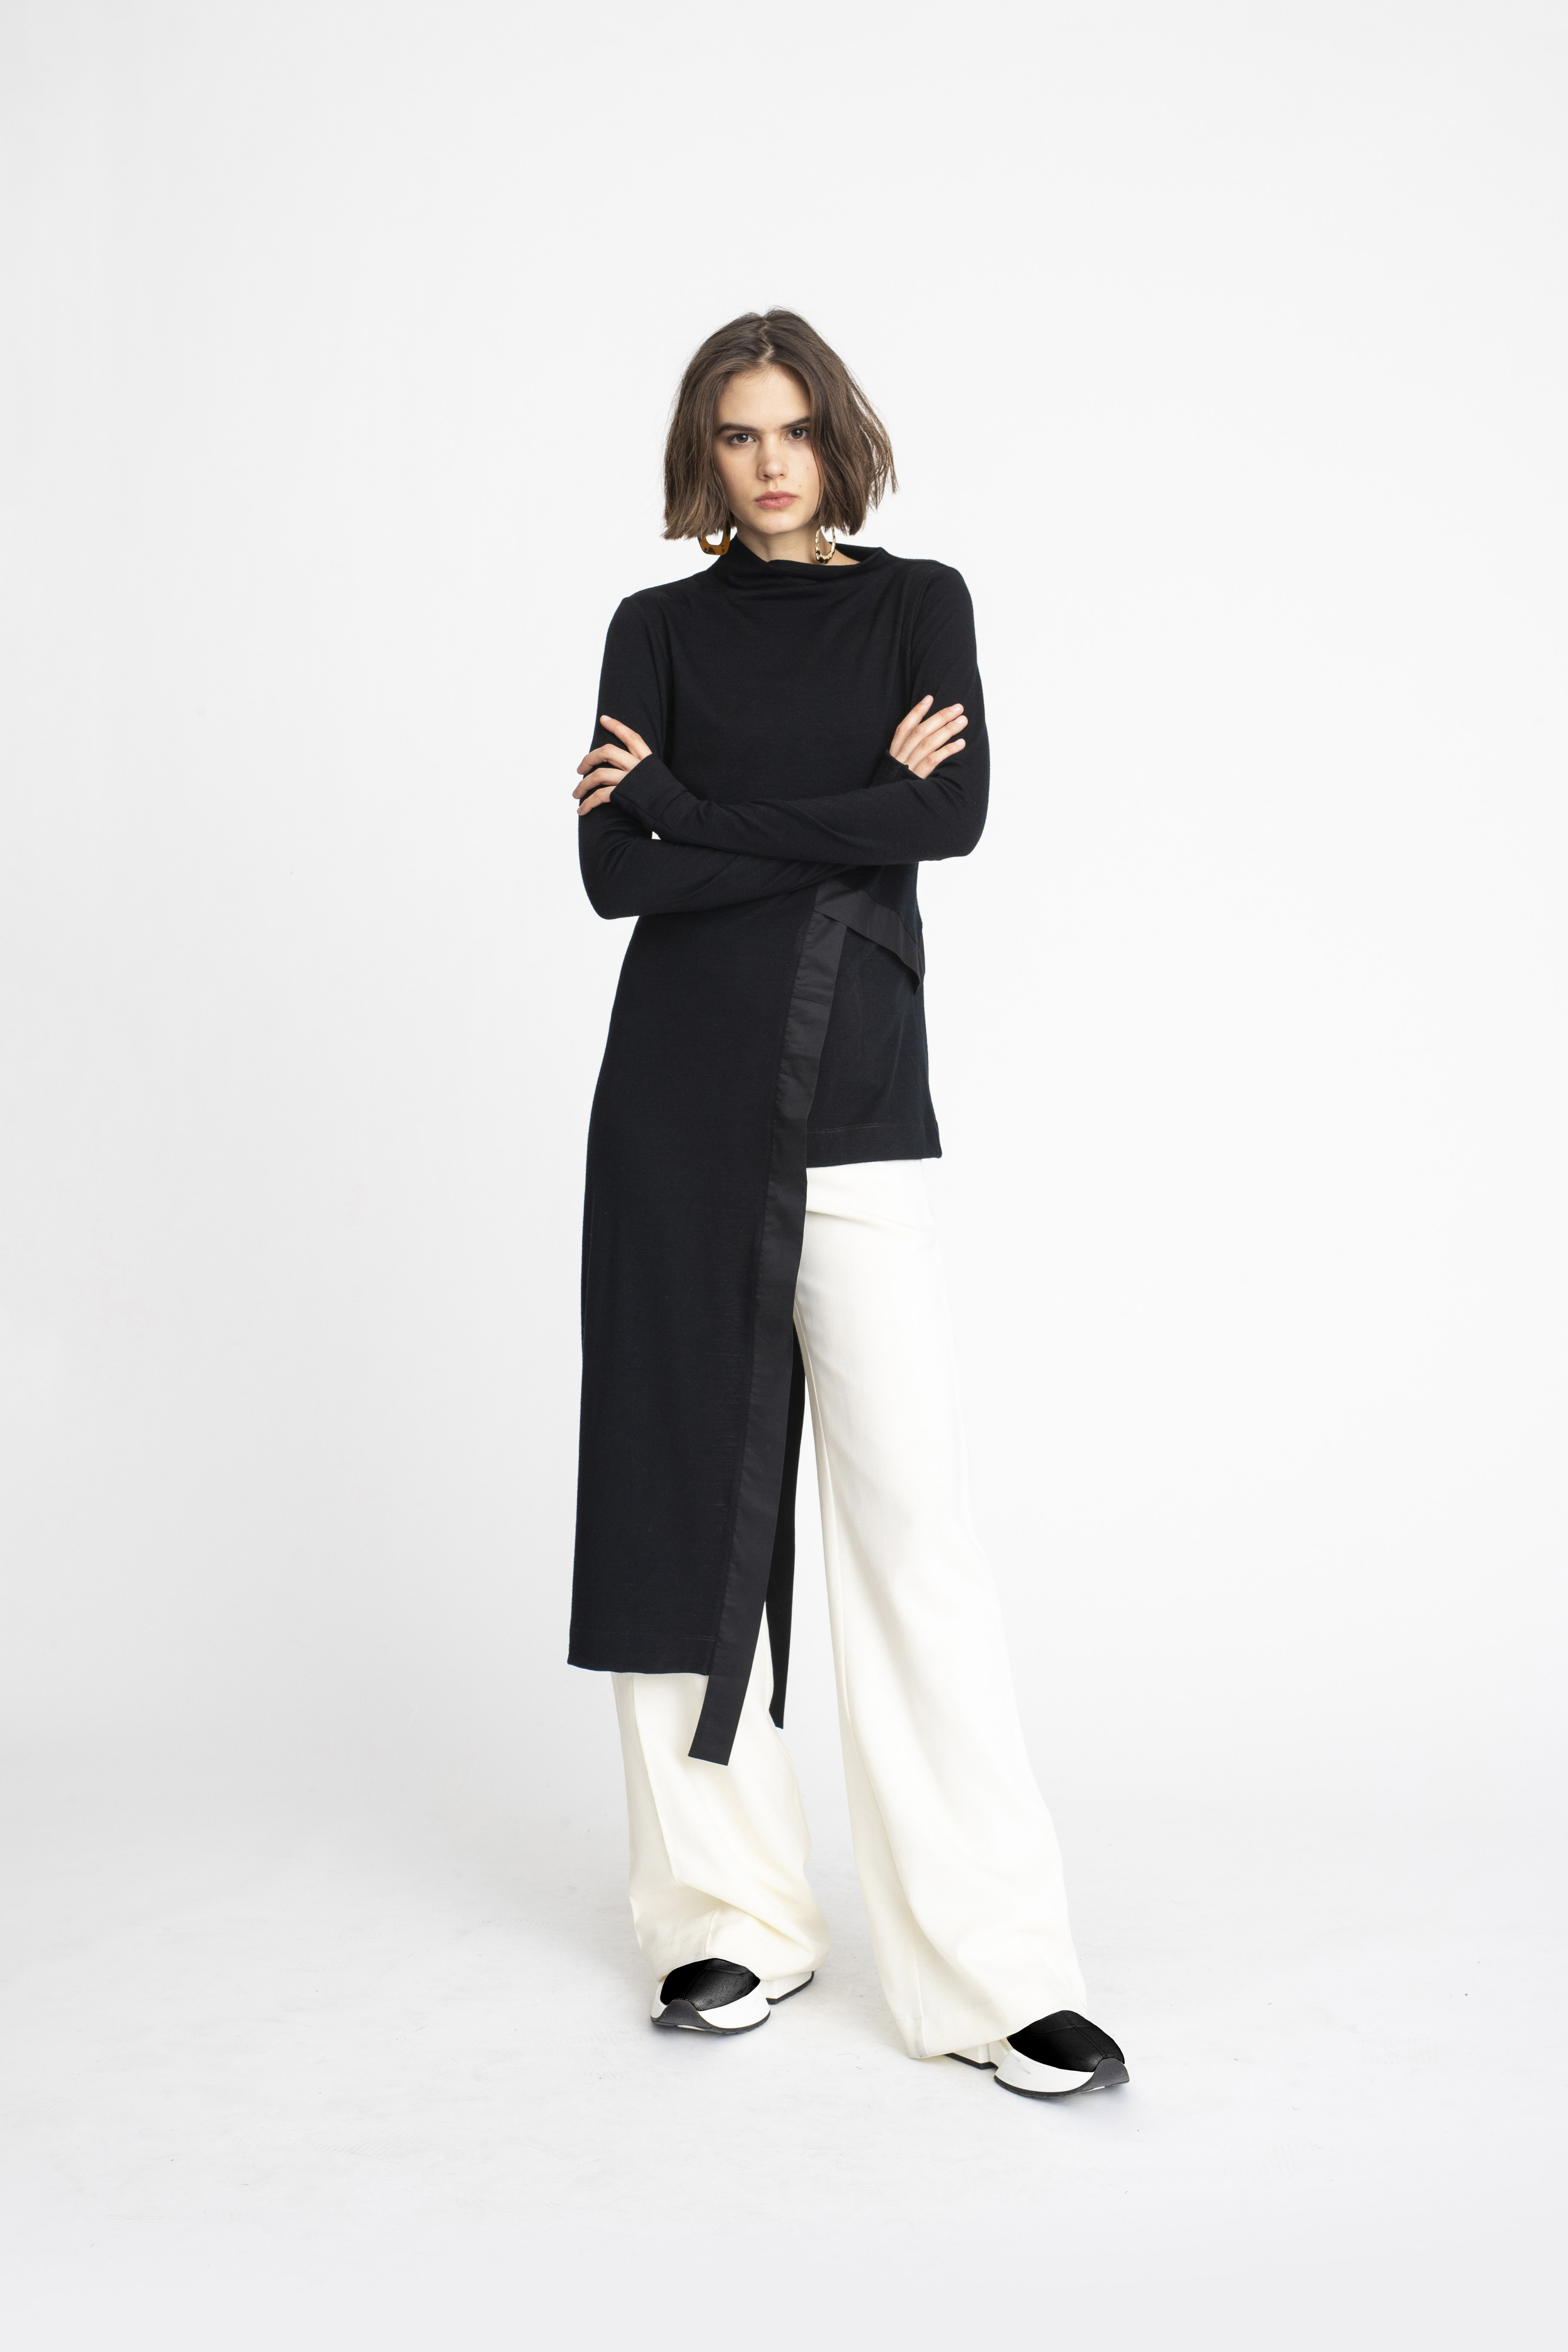 Aspect-Tunic_Panelled-Joust-Pant_TaylorBoutique_AW19_L112_2465 2